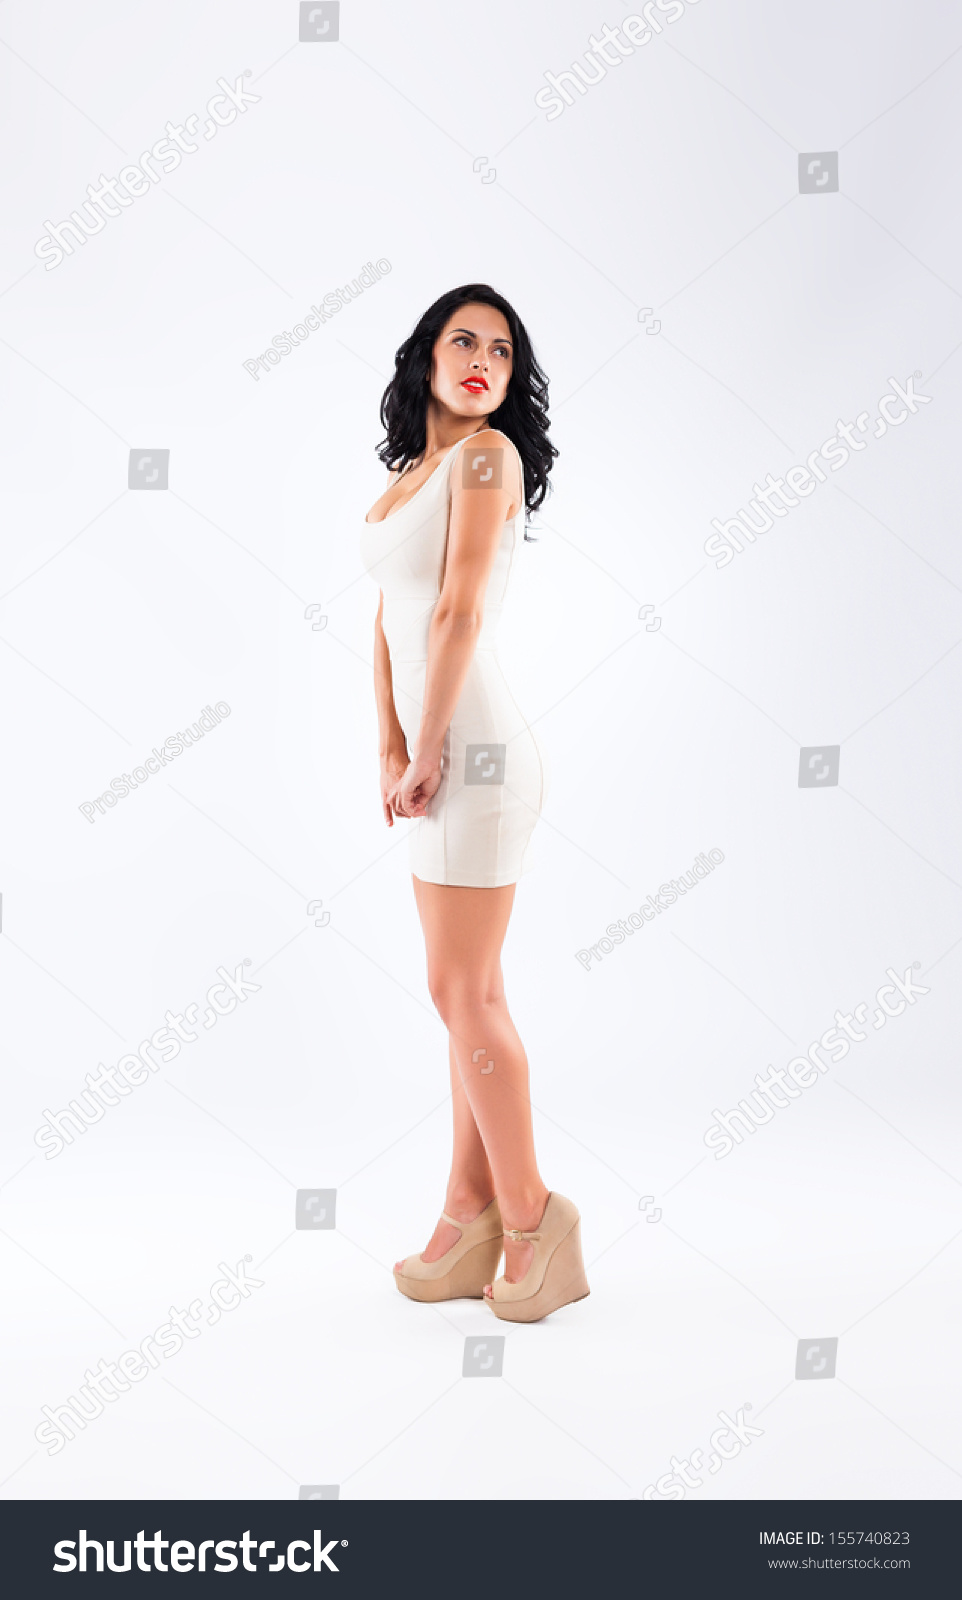 bc89b9e2f4c Fashion woman posing over gray background looking up side up empty copy  space